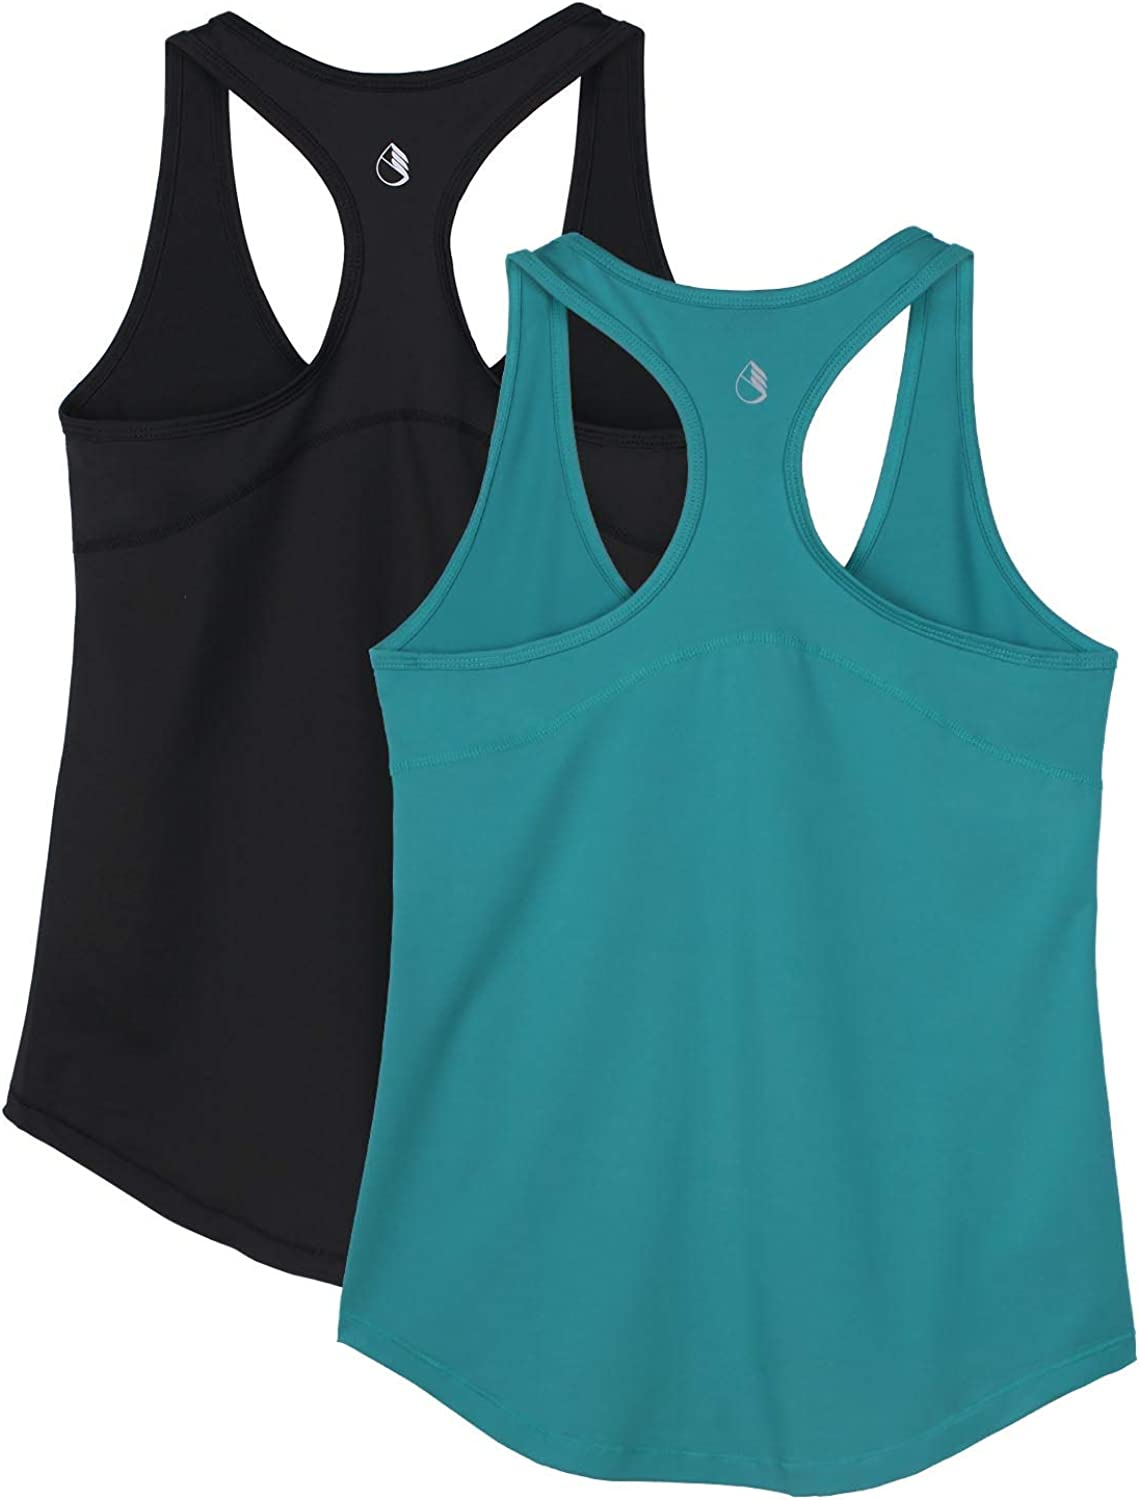 Athletic Yoga Tops icyzone Workout Tank Tops for Women Exercise Gym Shirts Pack of 2 Racerback Running Tank Top